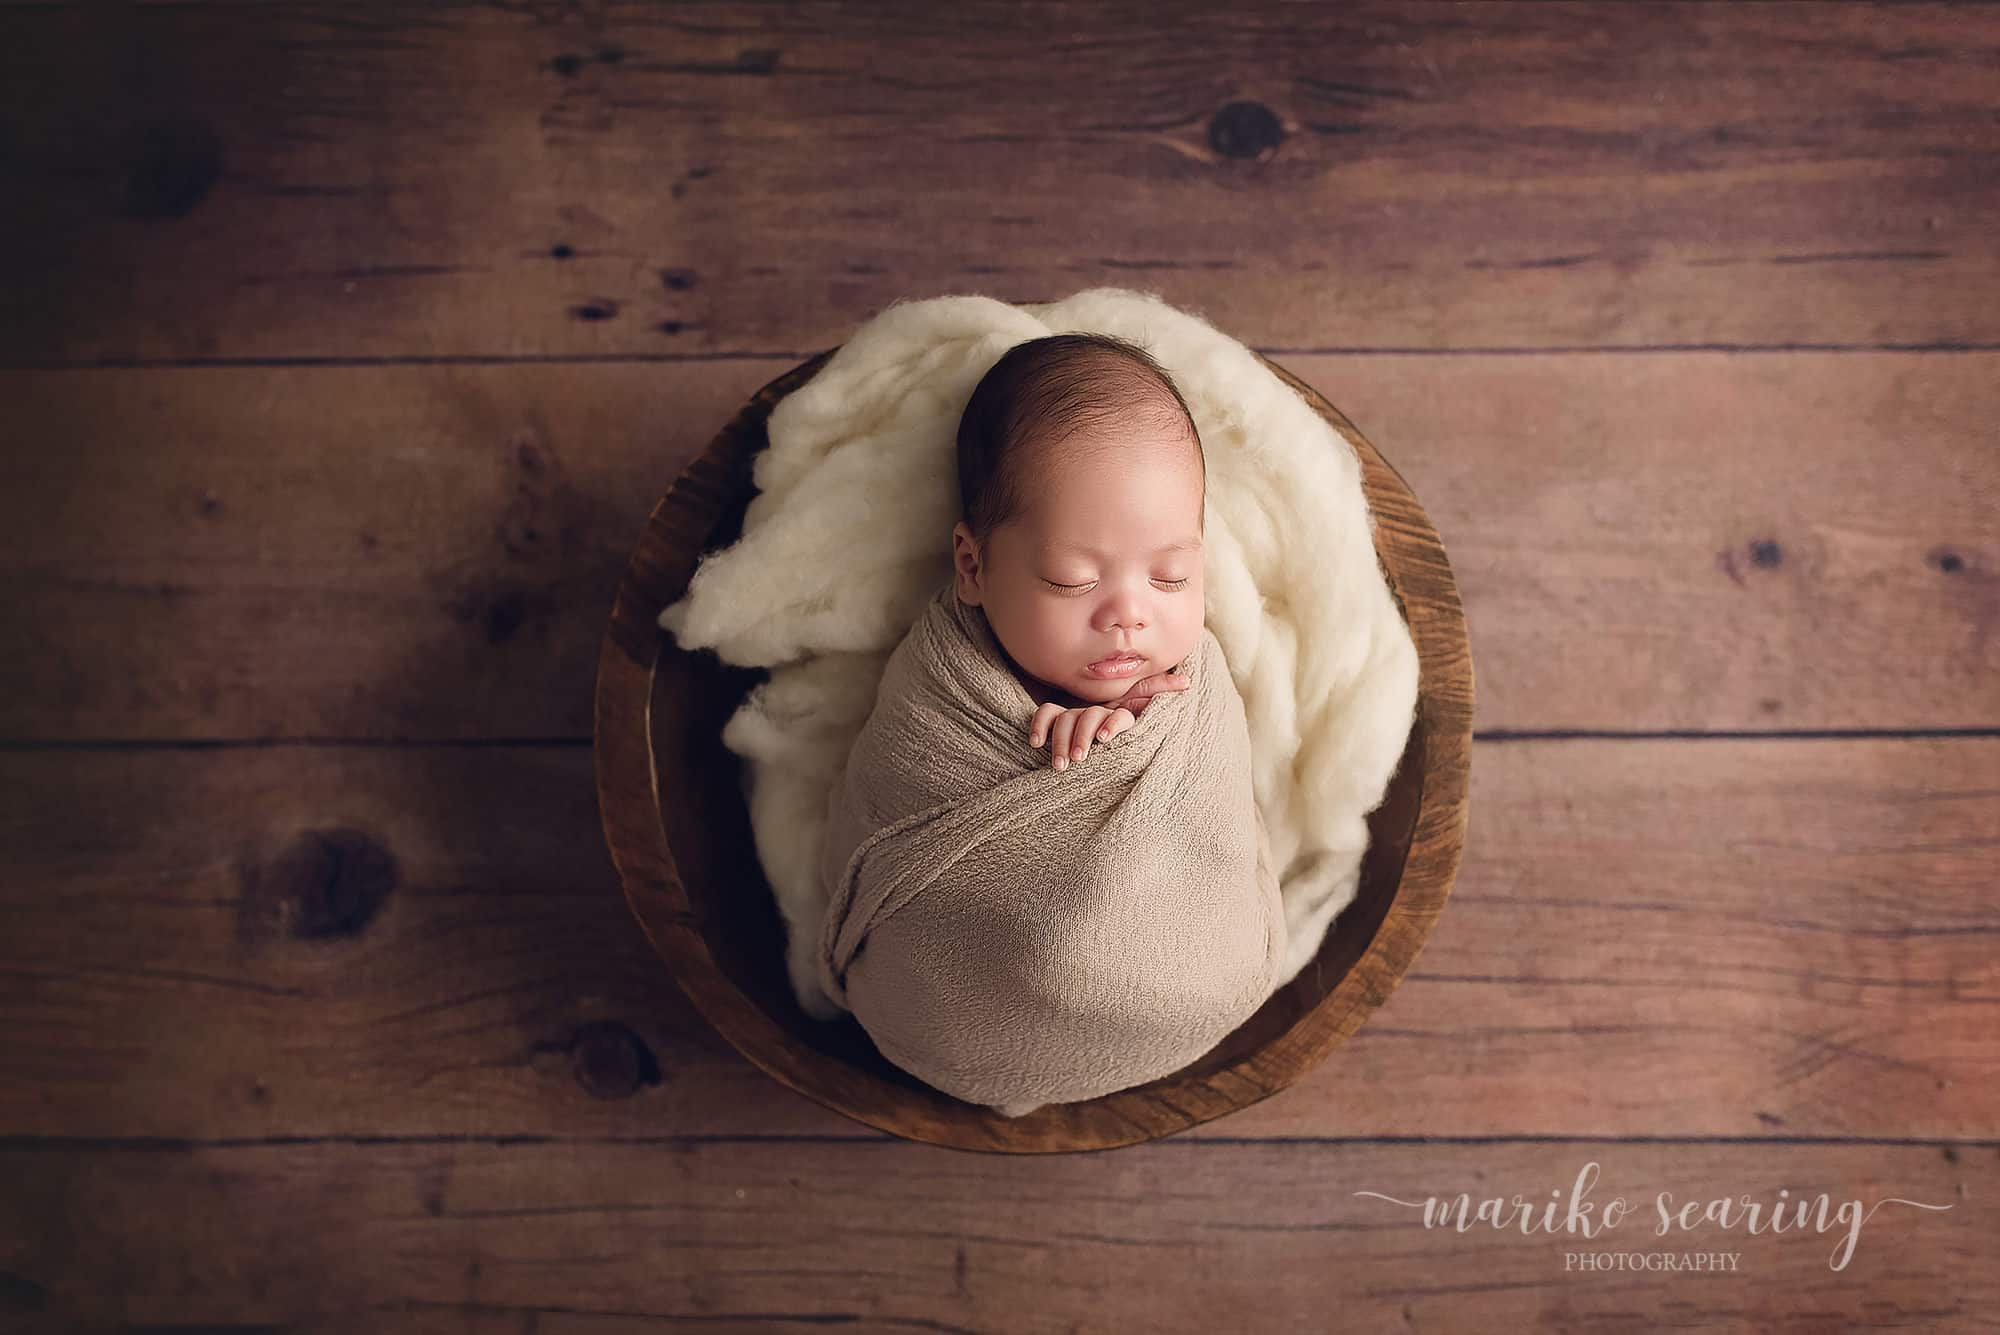 03052018 classic posed baton rouge newborn photographer tan wrapped sleeping baby in bowl